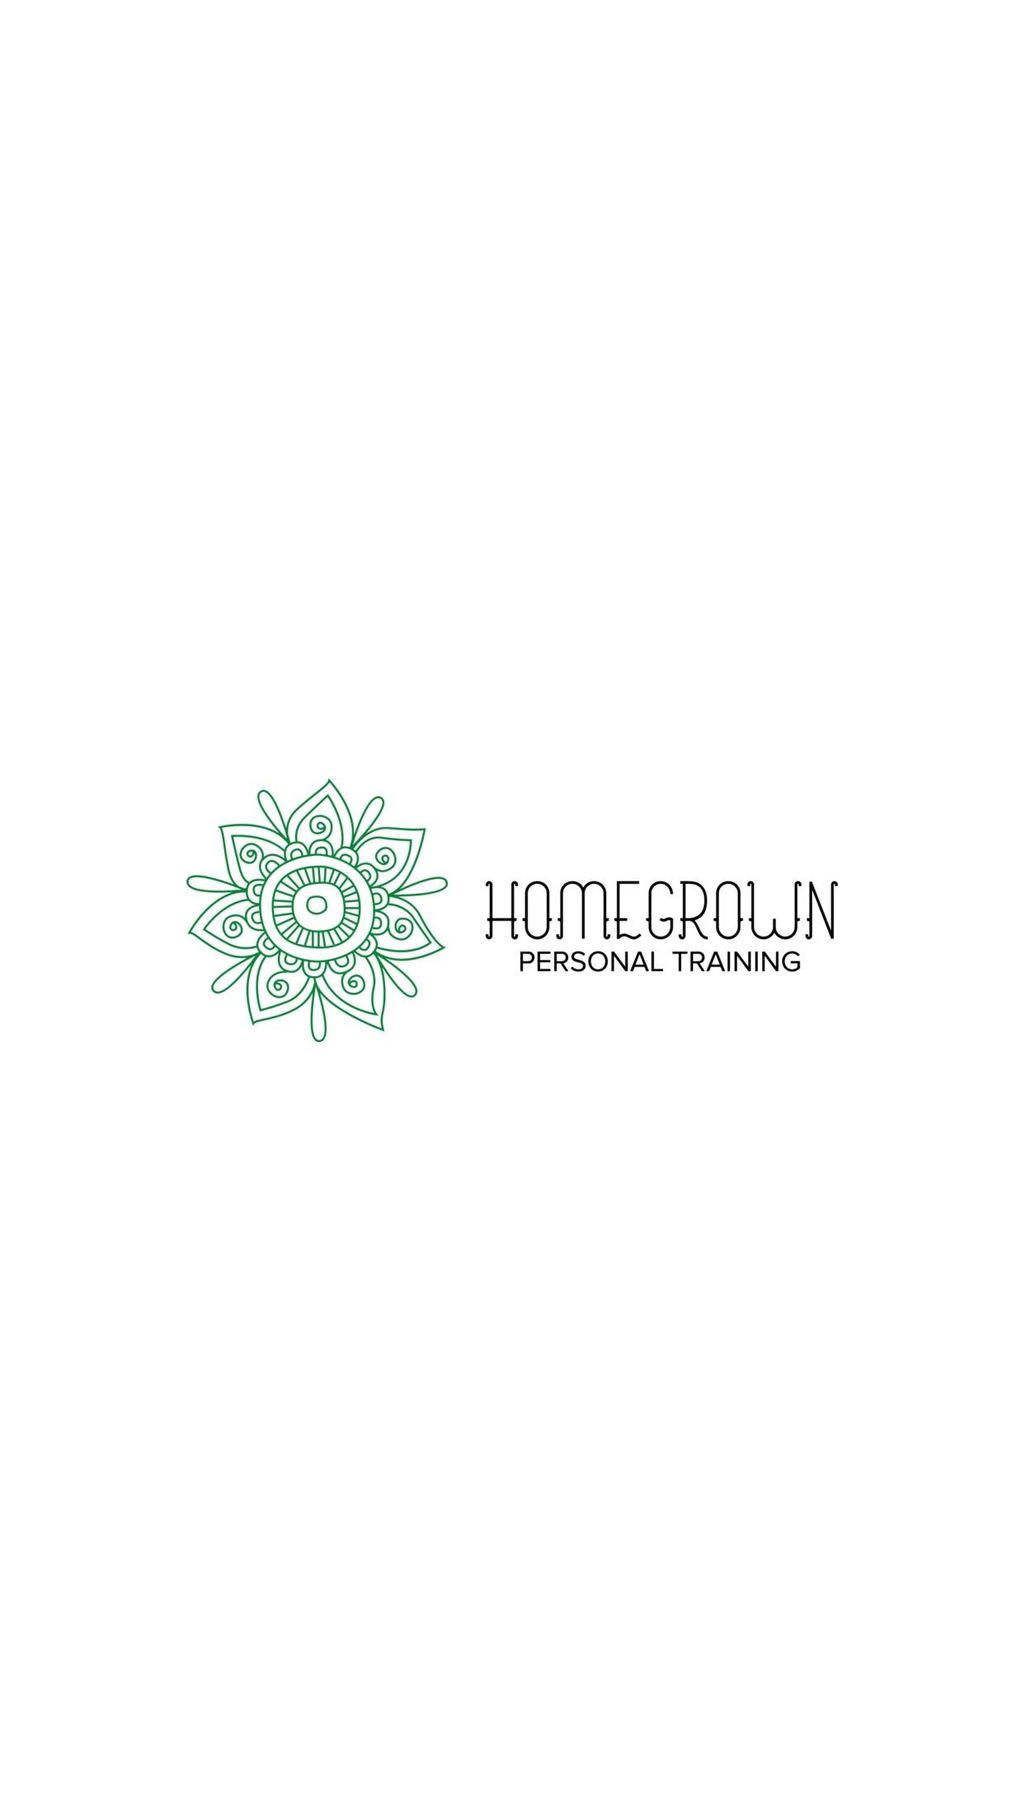 HomeGrown Personal Training